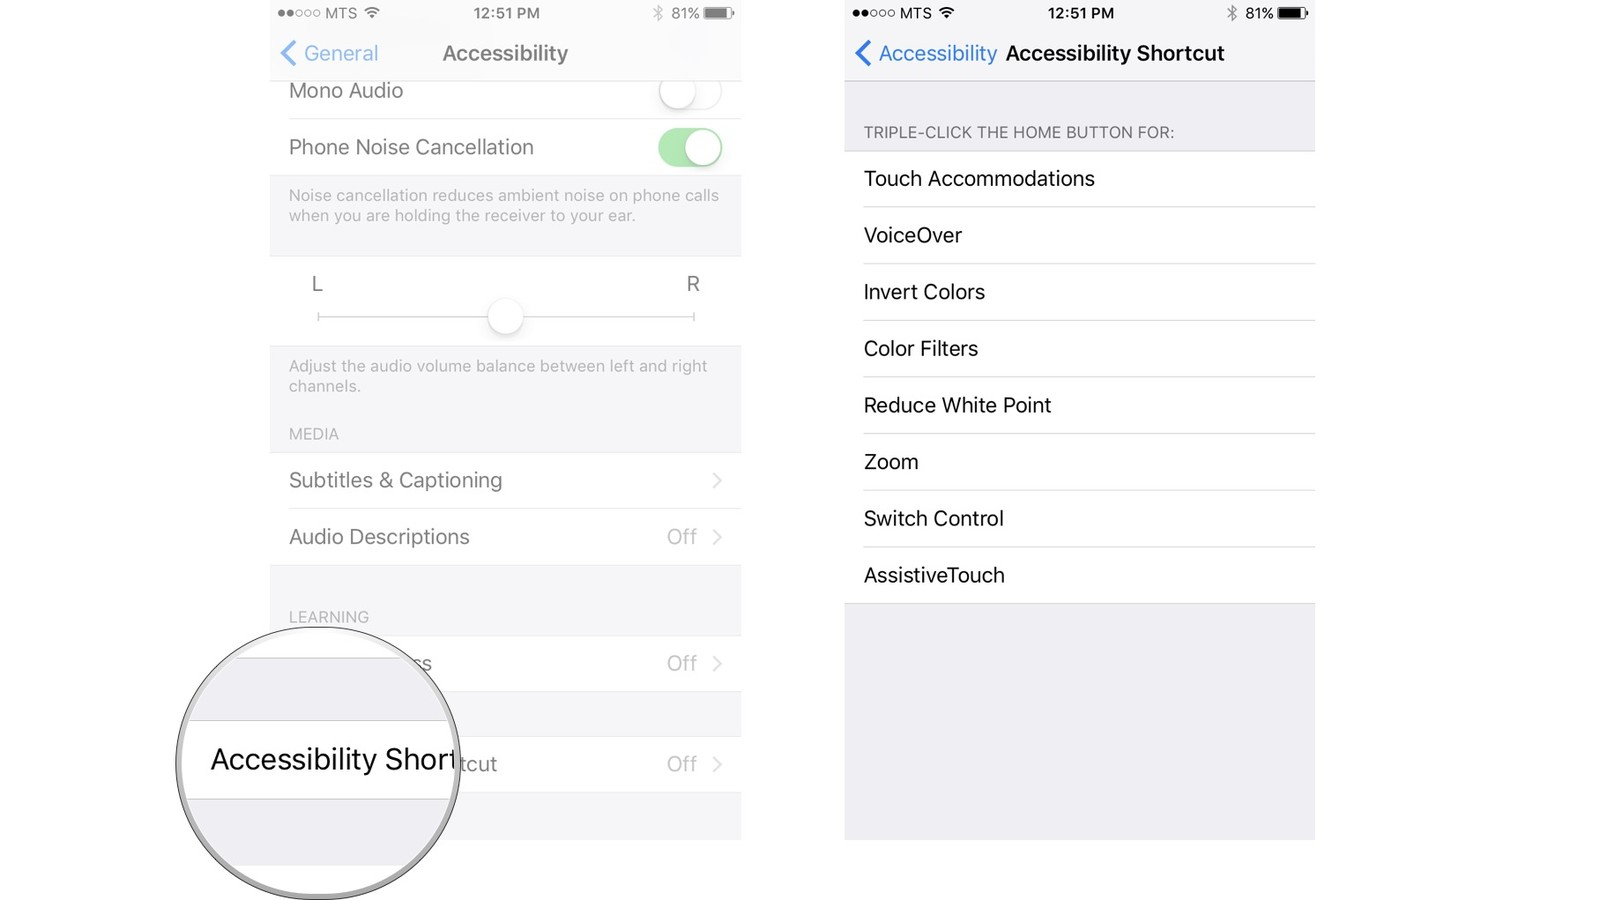 Tap Accessibility Shortcut, tap the action you want to perform when you triple-click